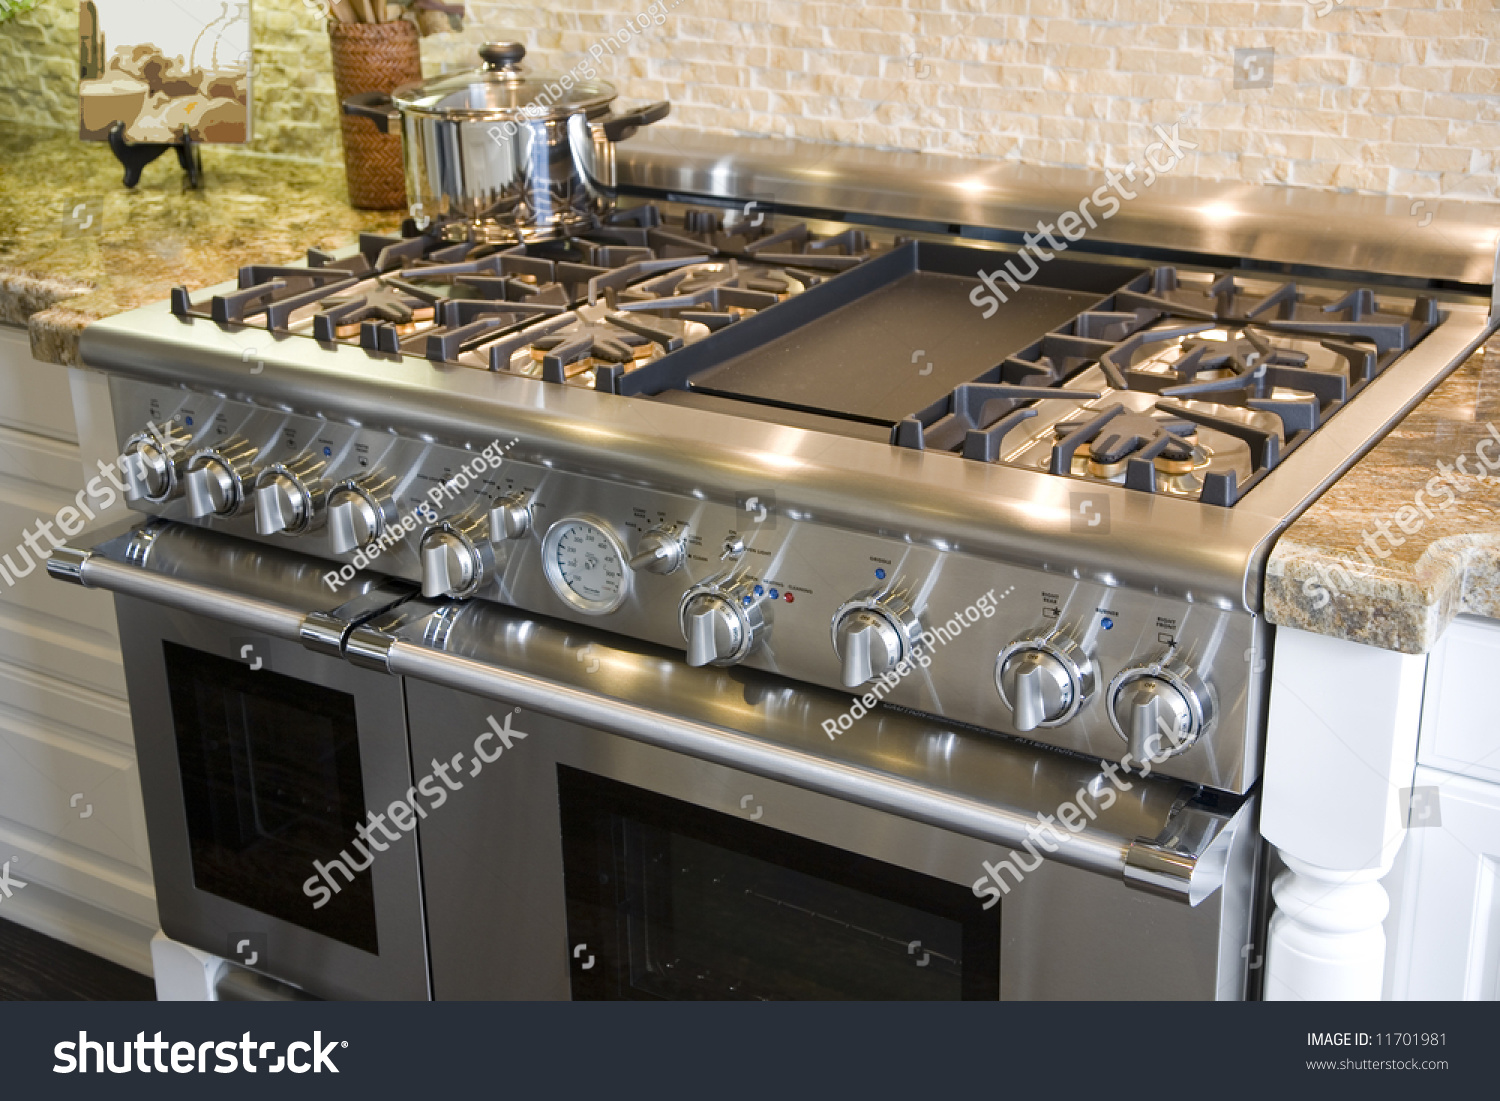 Stove And Oven In A Luxury Home Kitchen Stock Photo